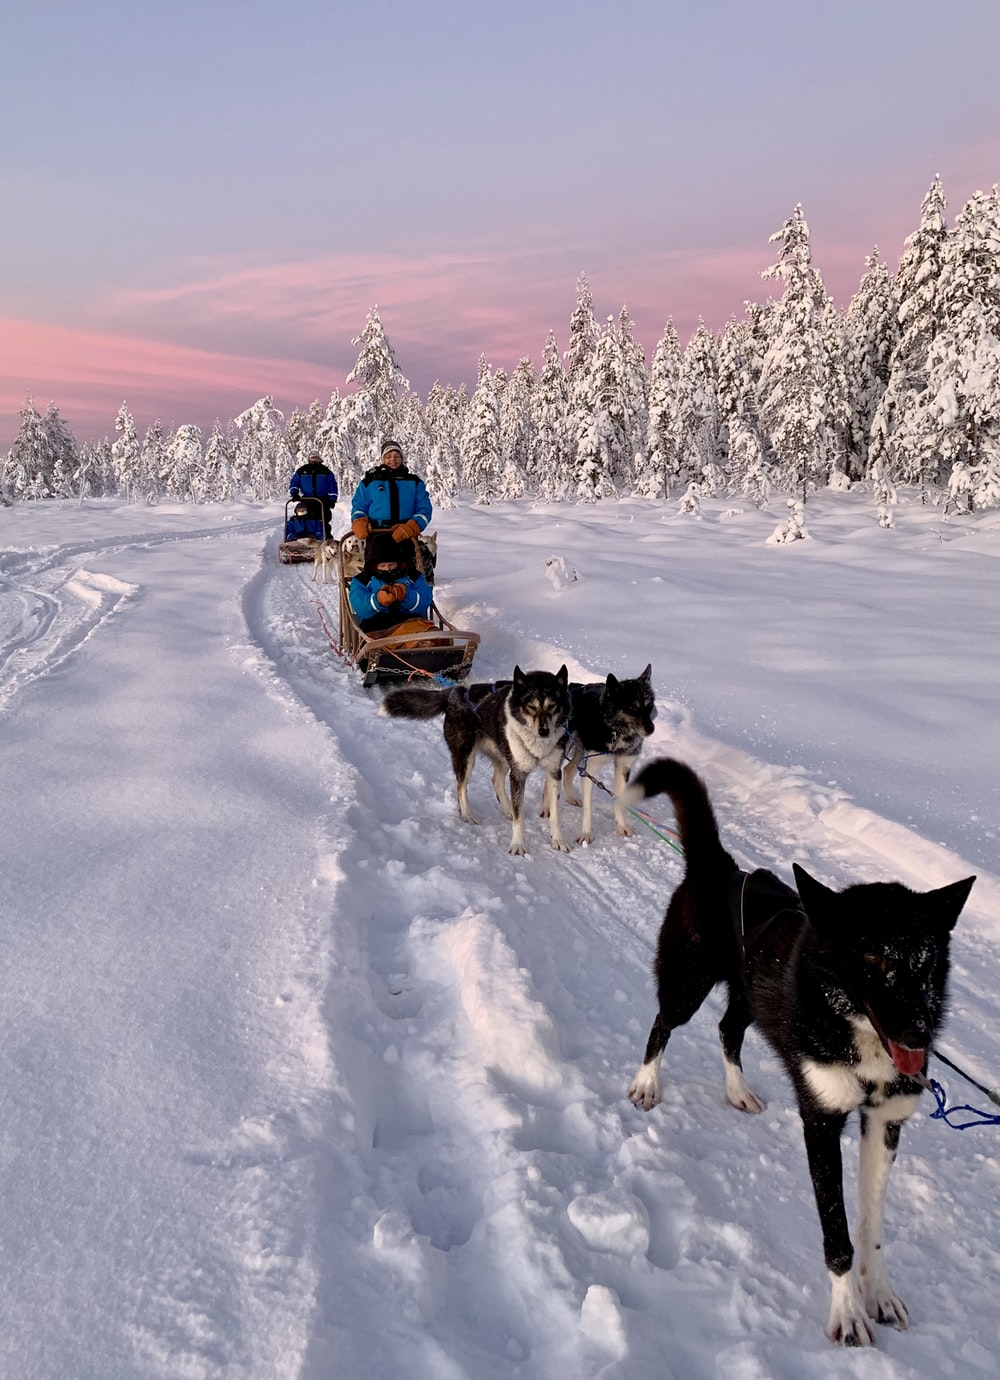 people riding on sled on snow covered ground during daytime